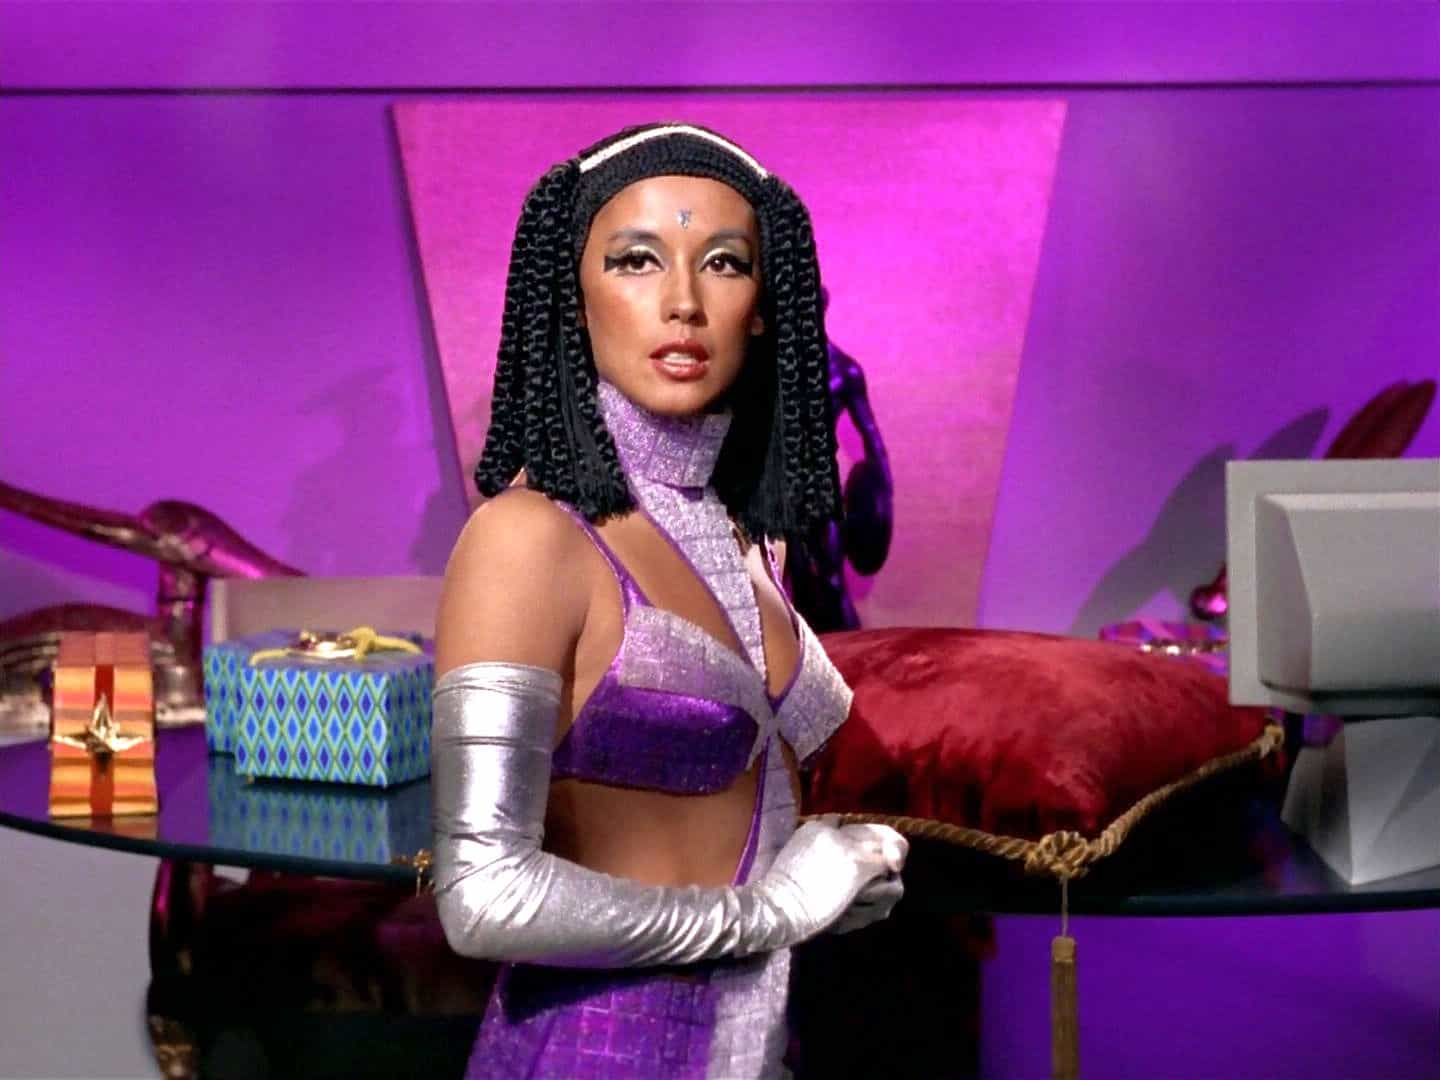 France Nuyen in the 1968 Star Trek episode, Elaan of Troyius - NBC